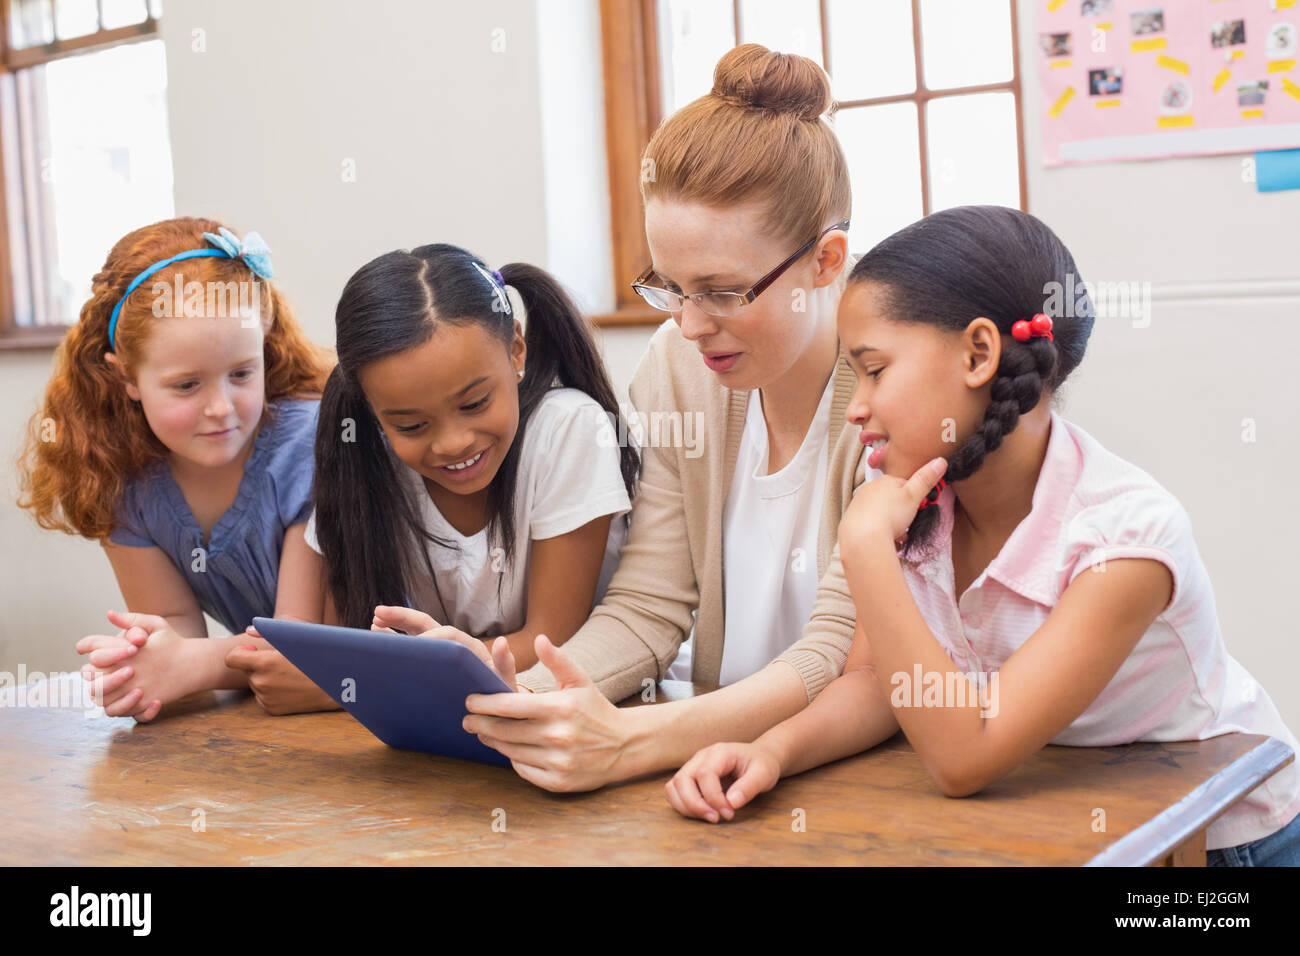 Teacher and pupils looking at tablet computer - Stock Image